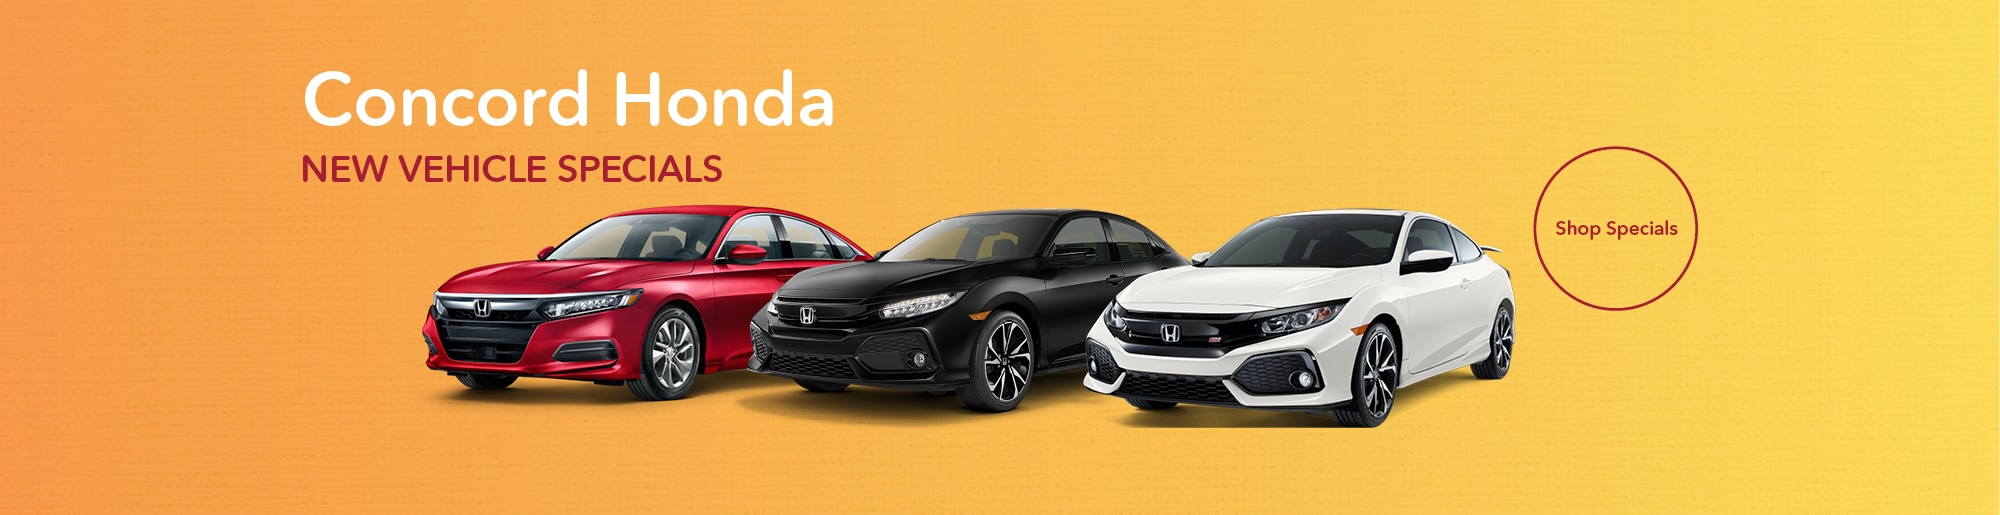 2018 Honda Civic EX $169 + TAX, WITH $2999 DRIVE OFF